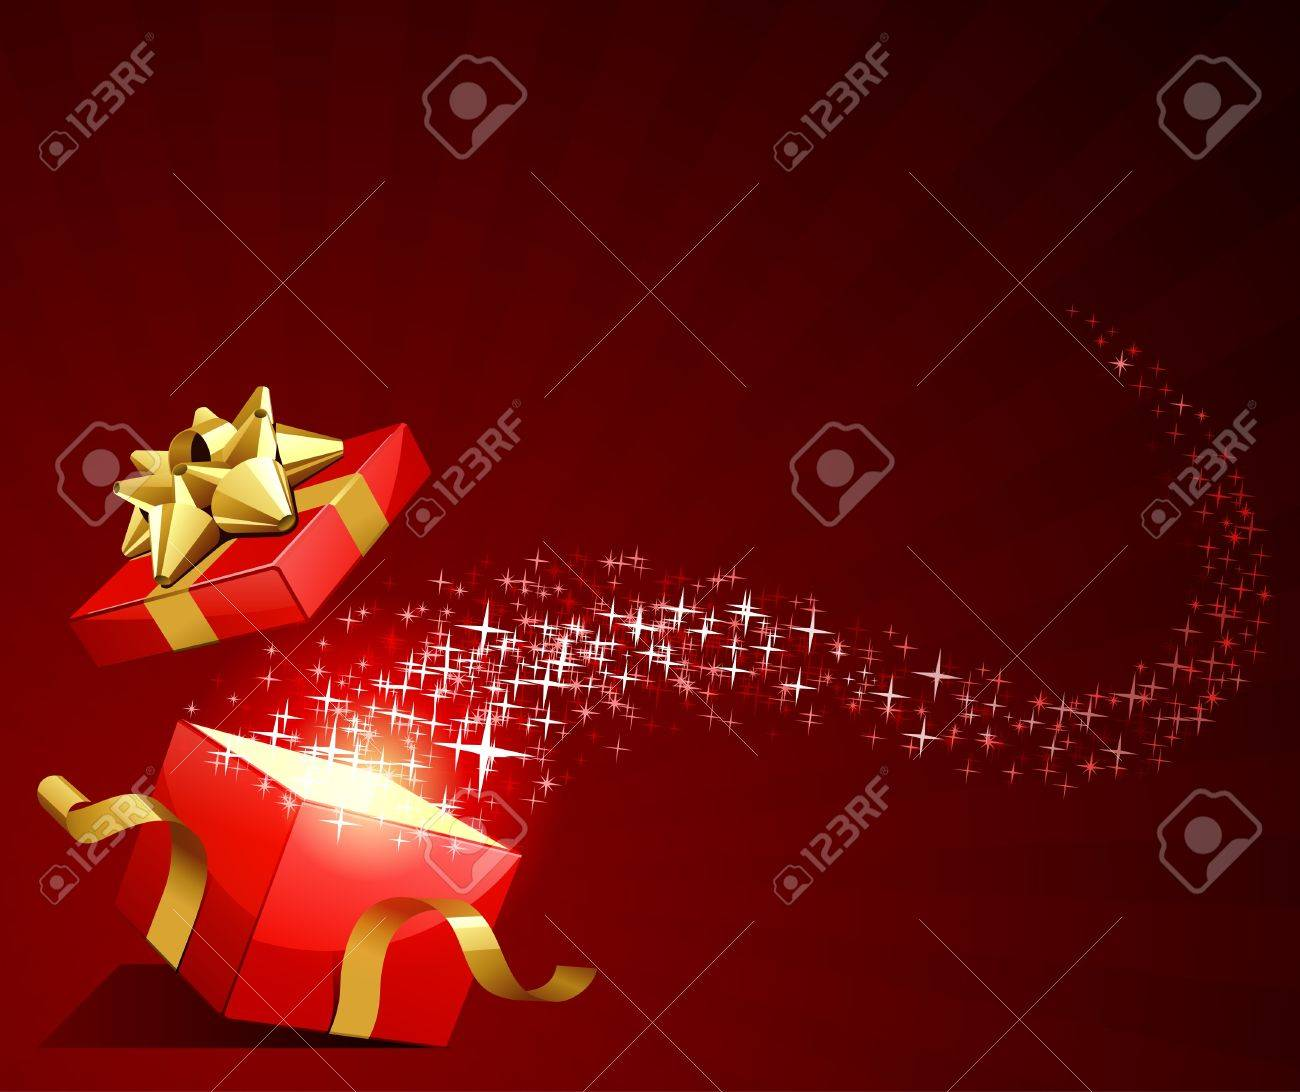 Open explore gift with fly stars vector background - 10553534